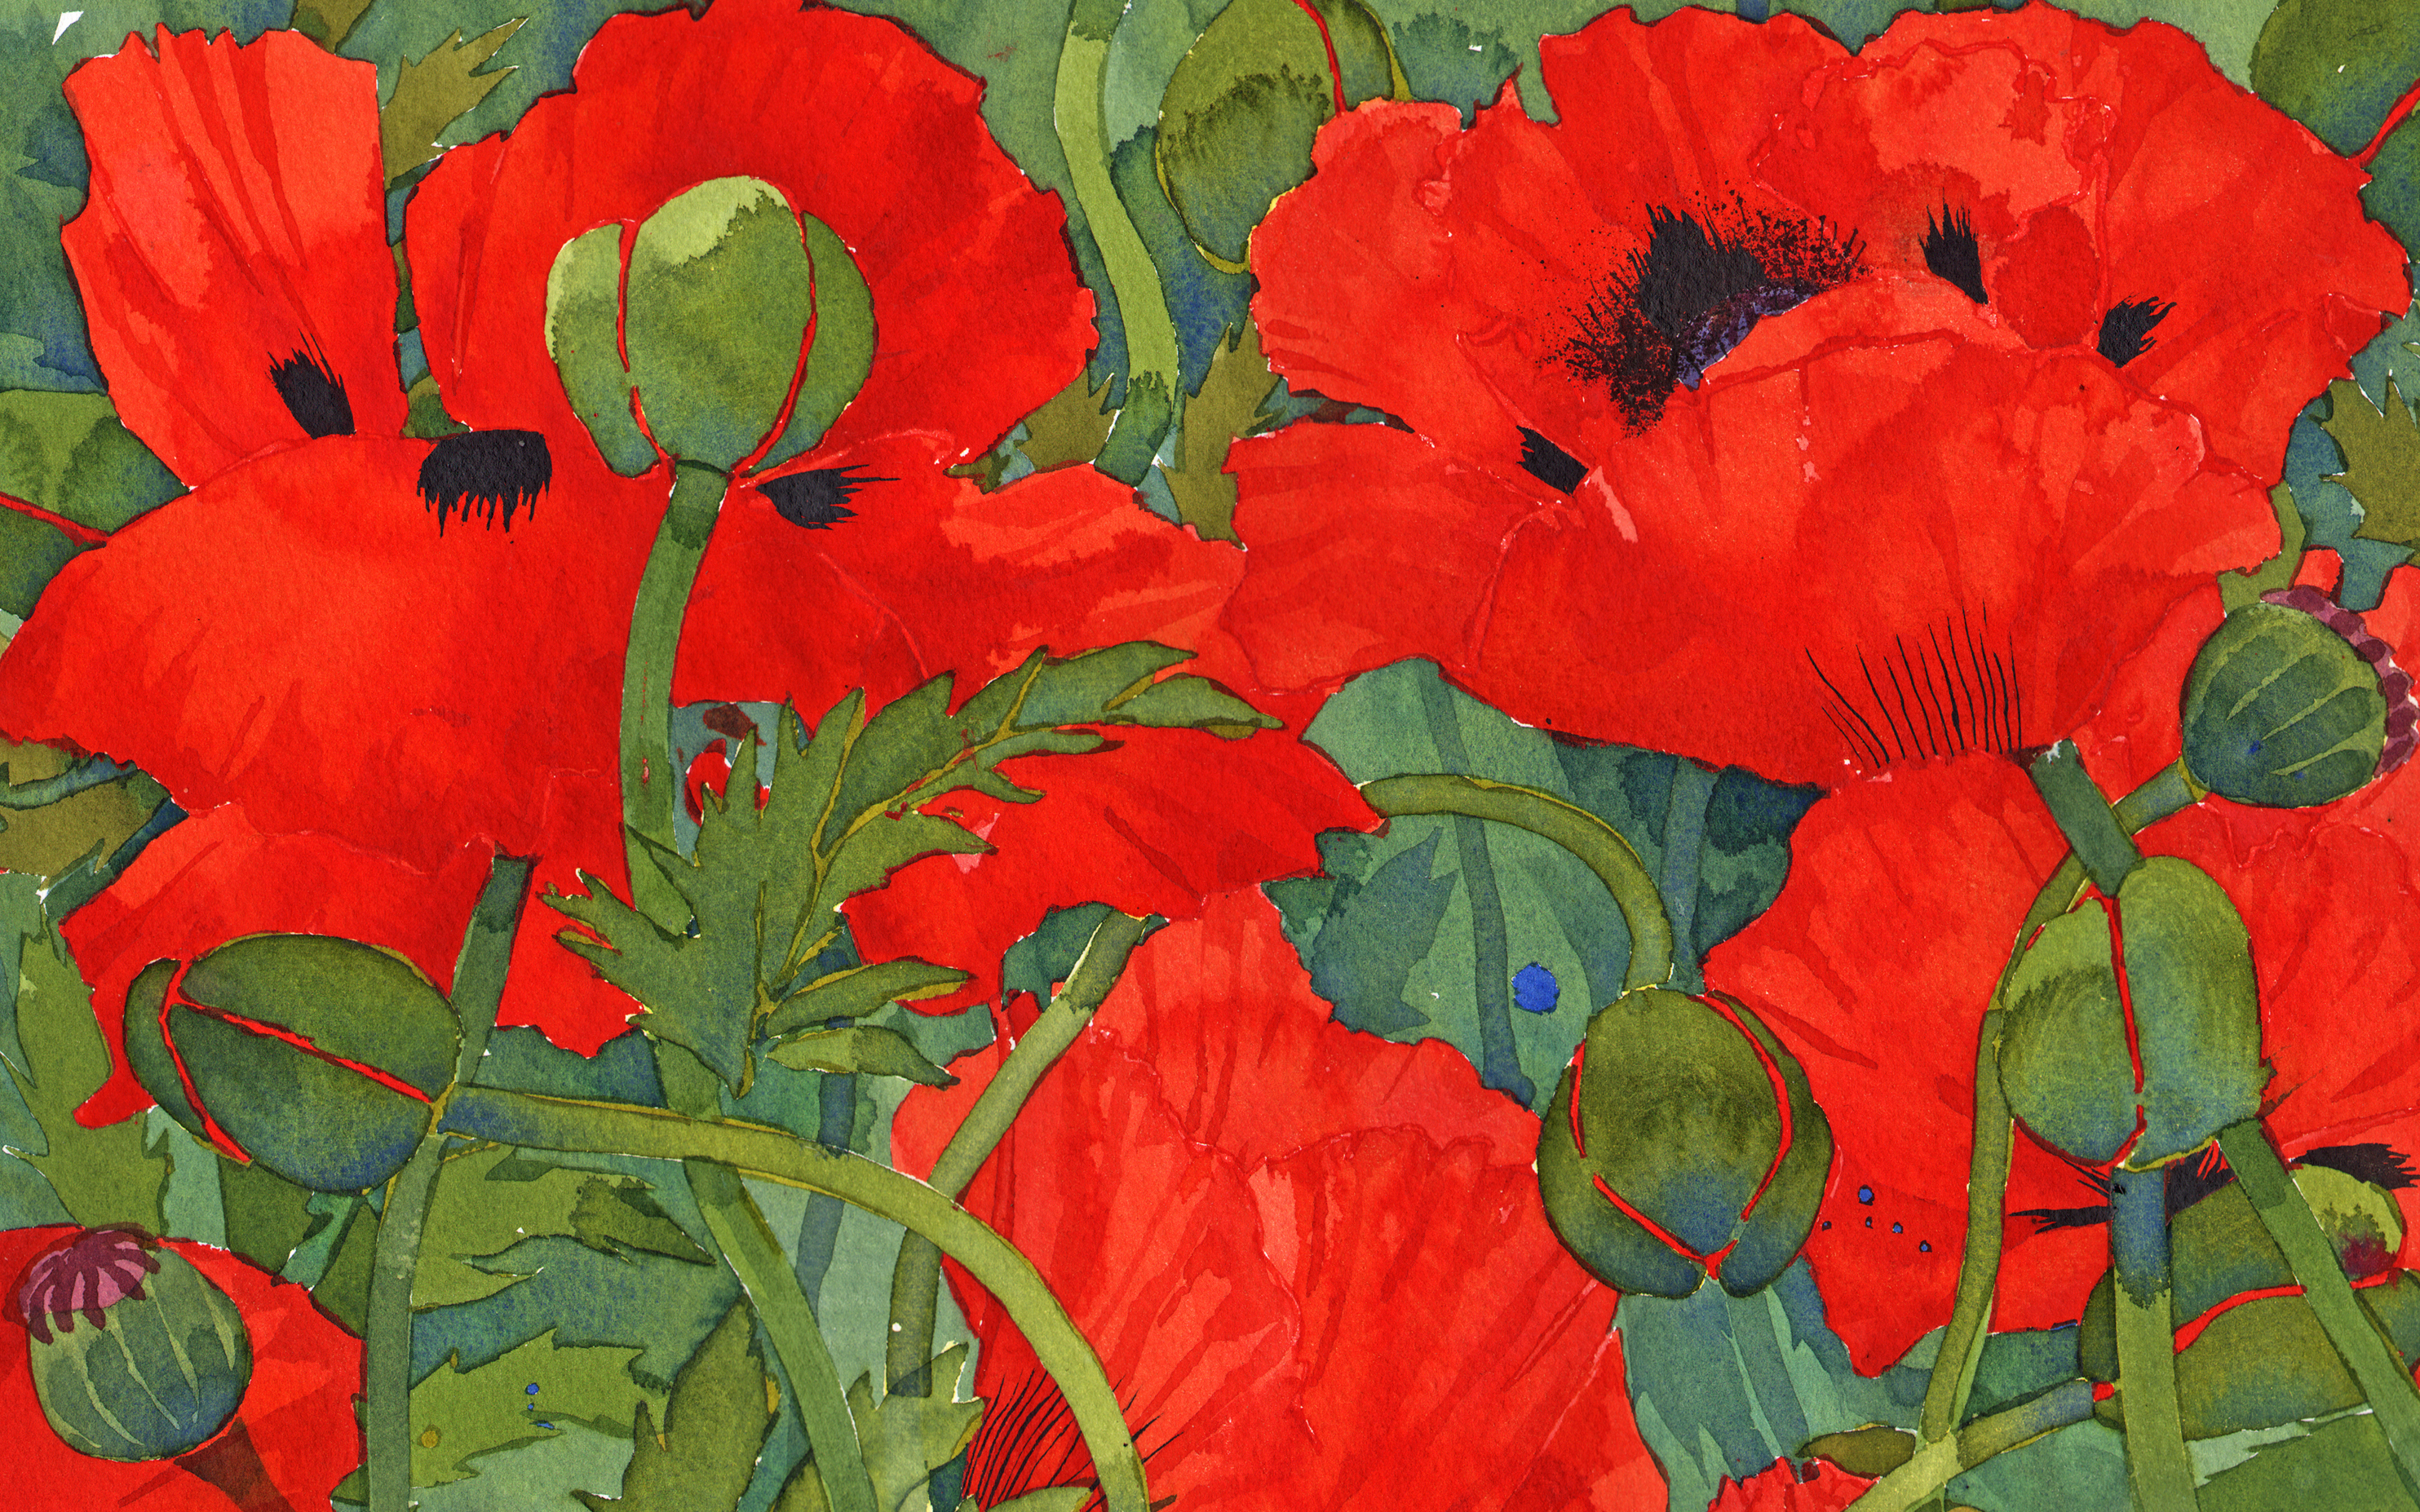 Paper Placemat pads, Poppies image